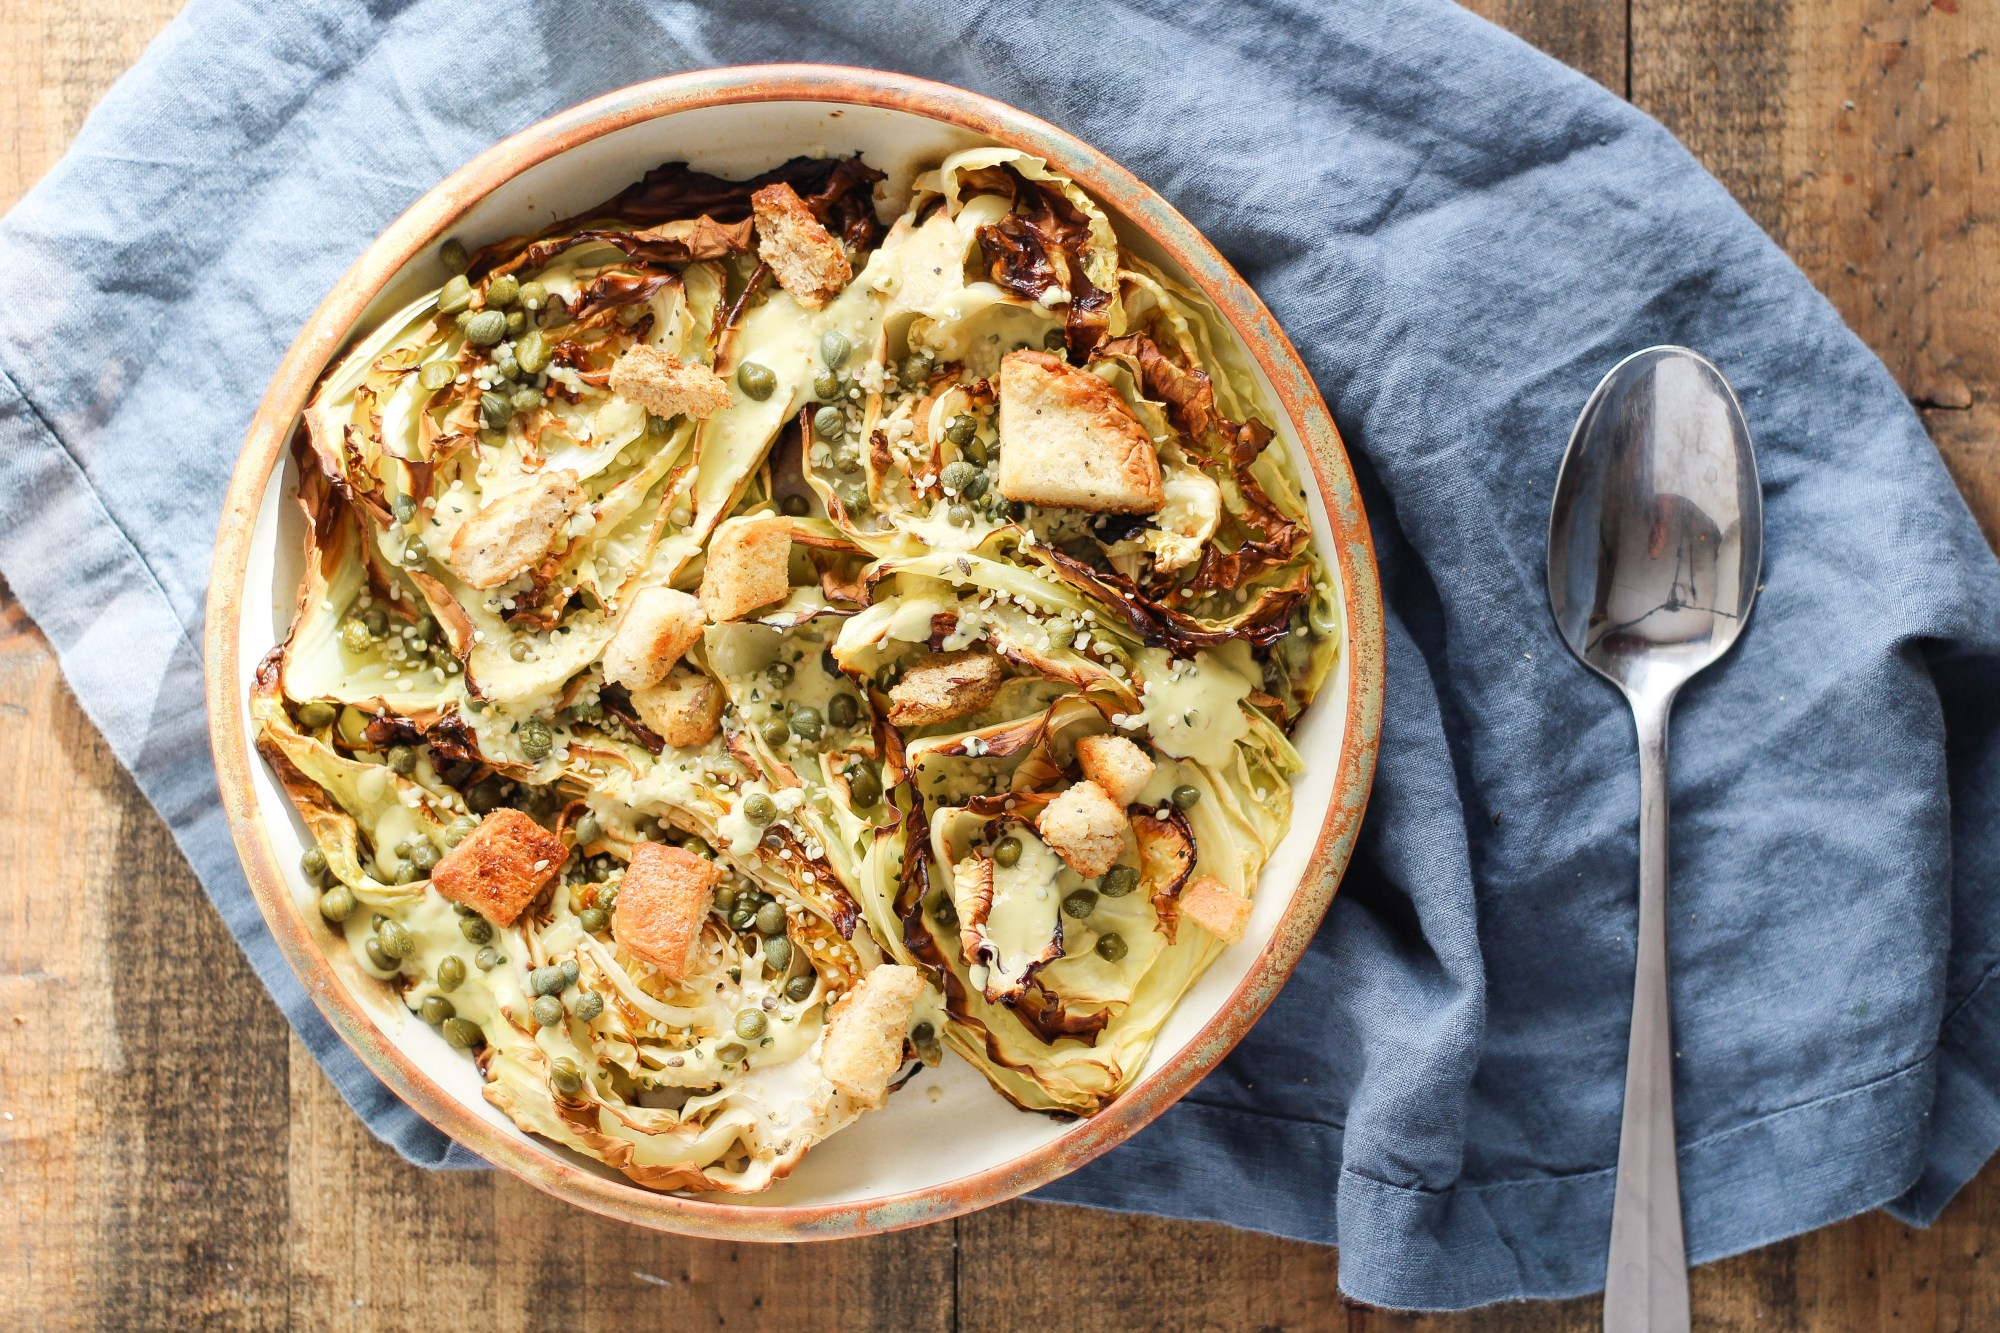 Vegan Roasted Cabbage Caesar Salad - Stephanie McKercher, RD of The Grateful Grazer